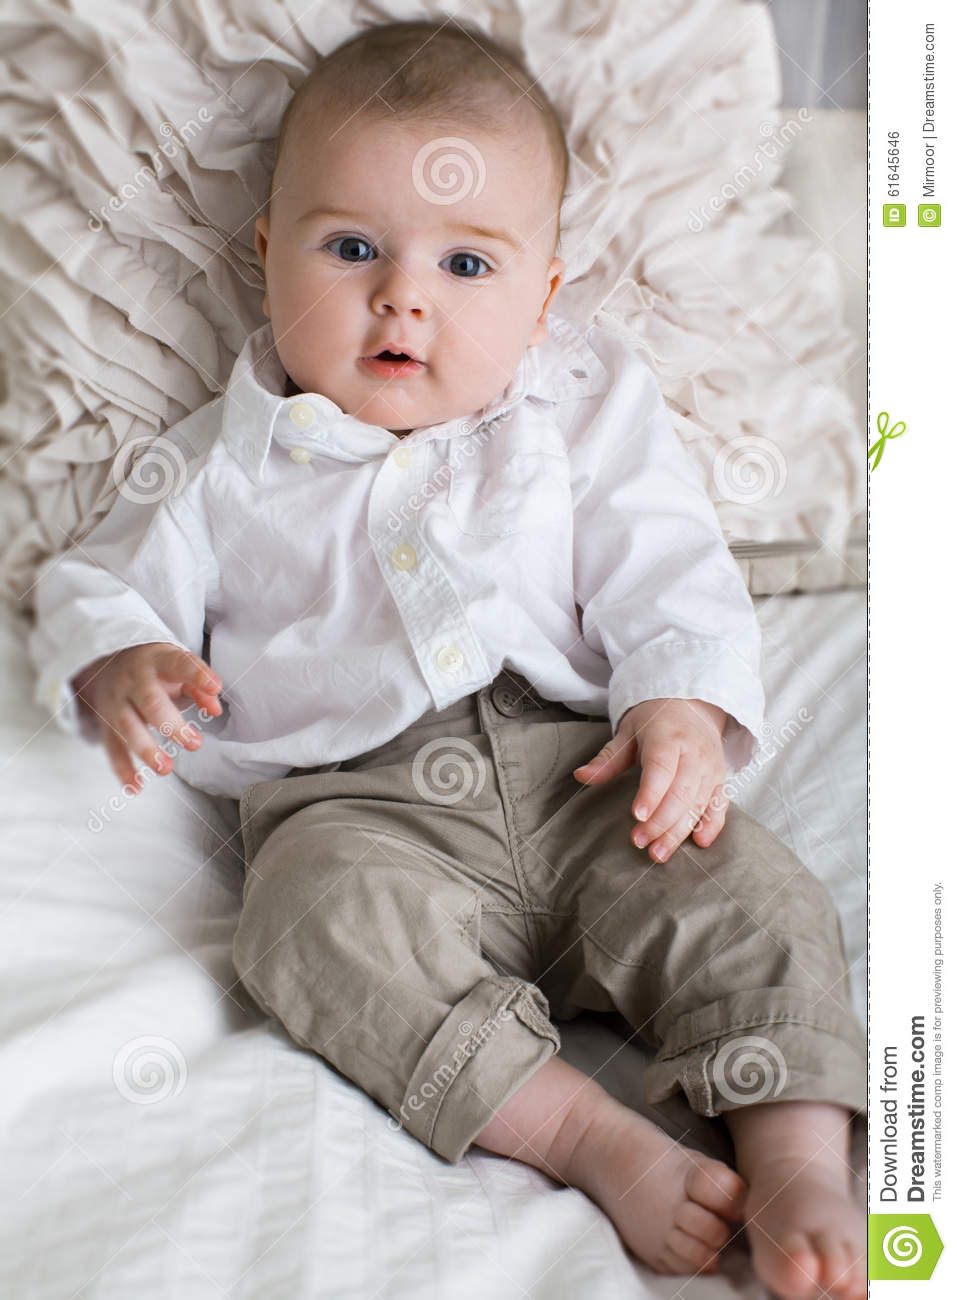 cute baby boy with big blue eyes stock photo image of funny face 61645646. Black Bedroom Furniture Sets. Home Design Ideas